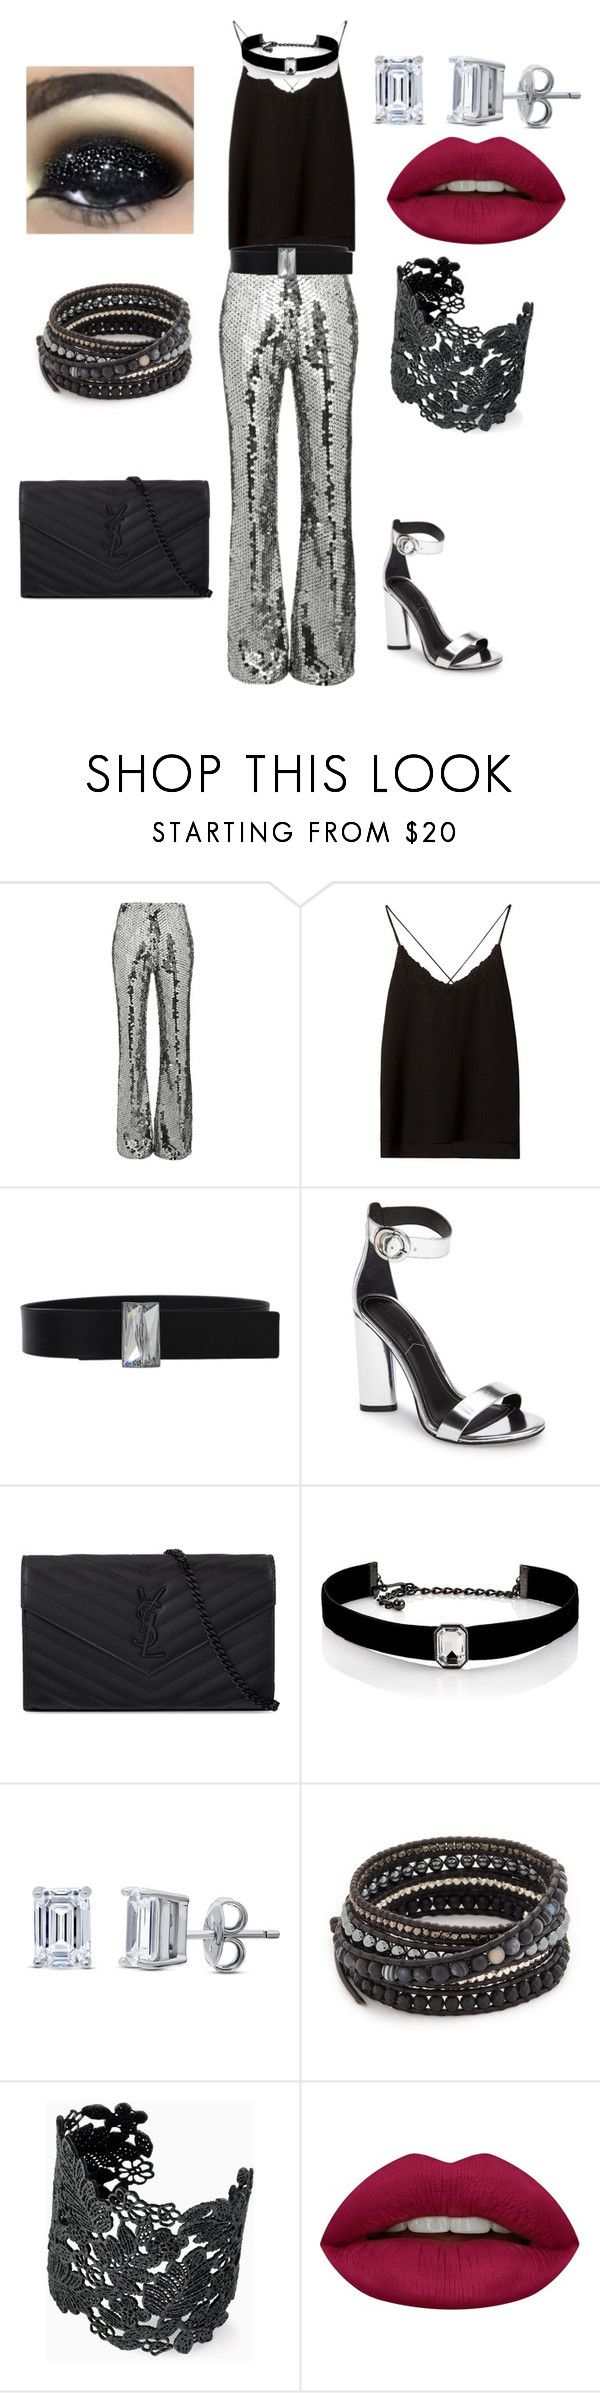 """U2, Joshua Tree, Box Seats"" by merylandry ❤ liked on Polyvore featuring Filles à papa, Massimo Dutti, Lanvin, Kendall + Kylie, Yves Saint Laurent, Kenneth Jay Lane, BERRICLE, Chan Luu, Stella & Dot and Huda Beauty"